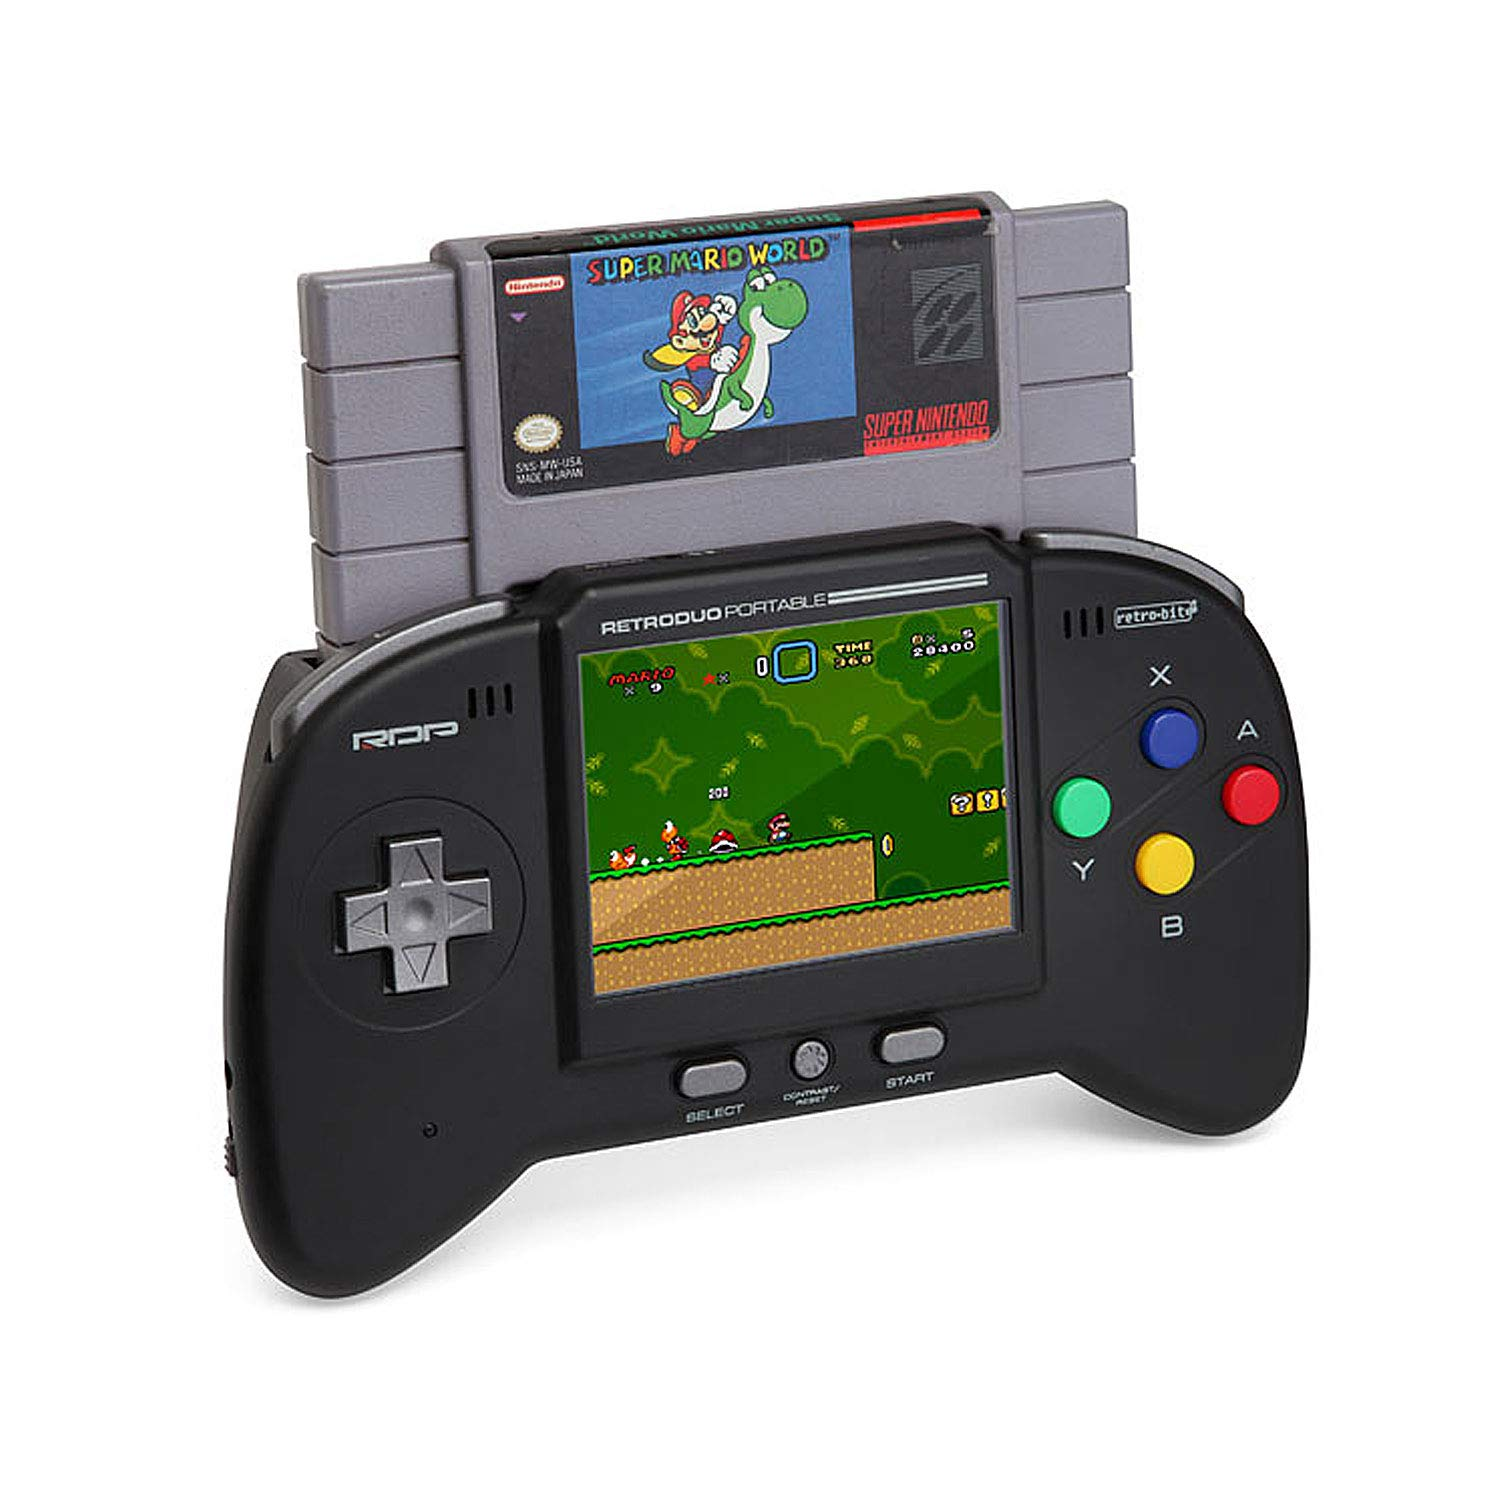 Retro-Bit RDP 2 in 1 Portable Handheld Console System - for NES and SNES Games - Black